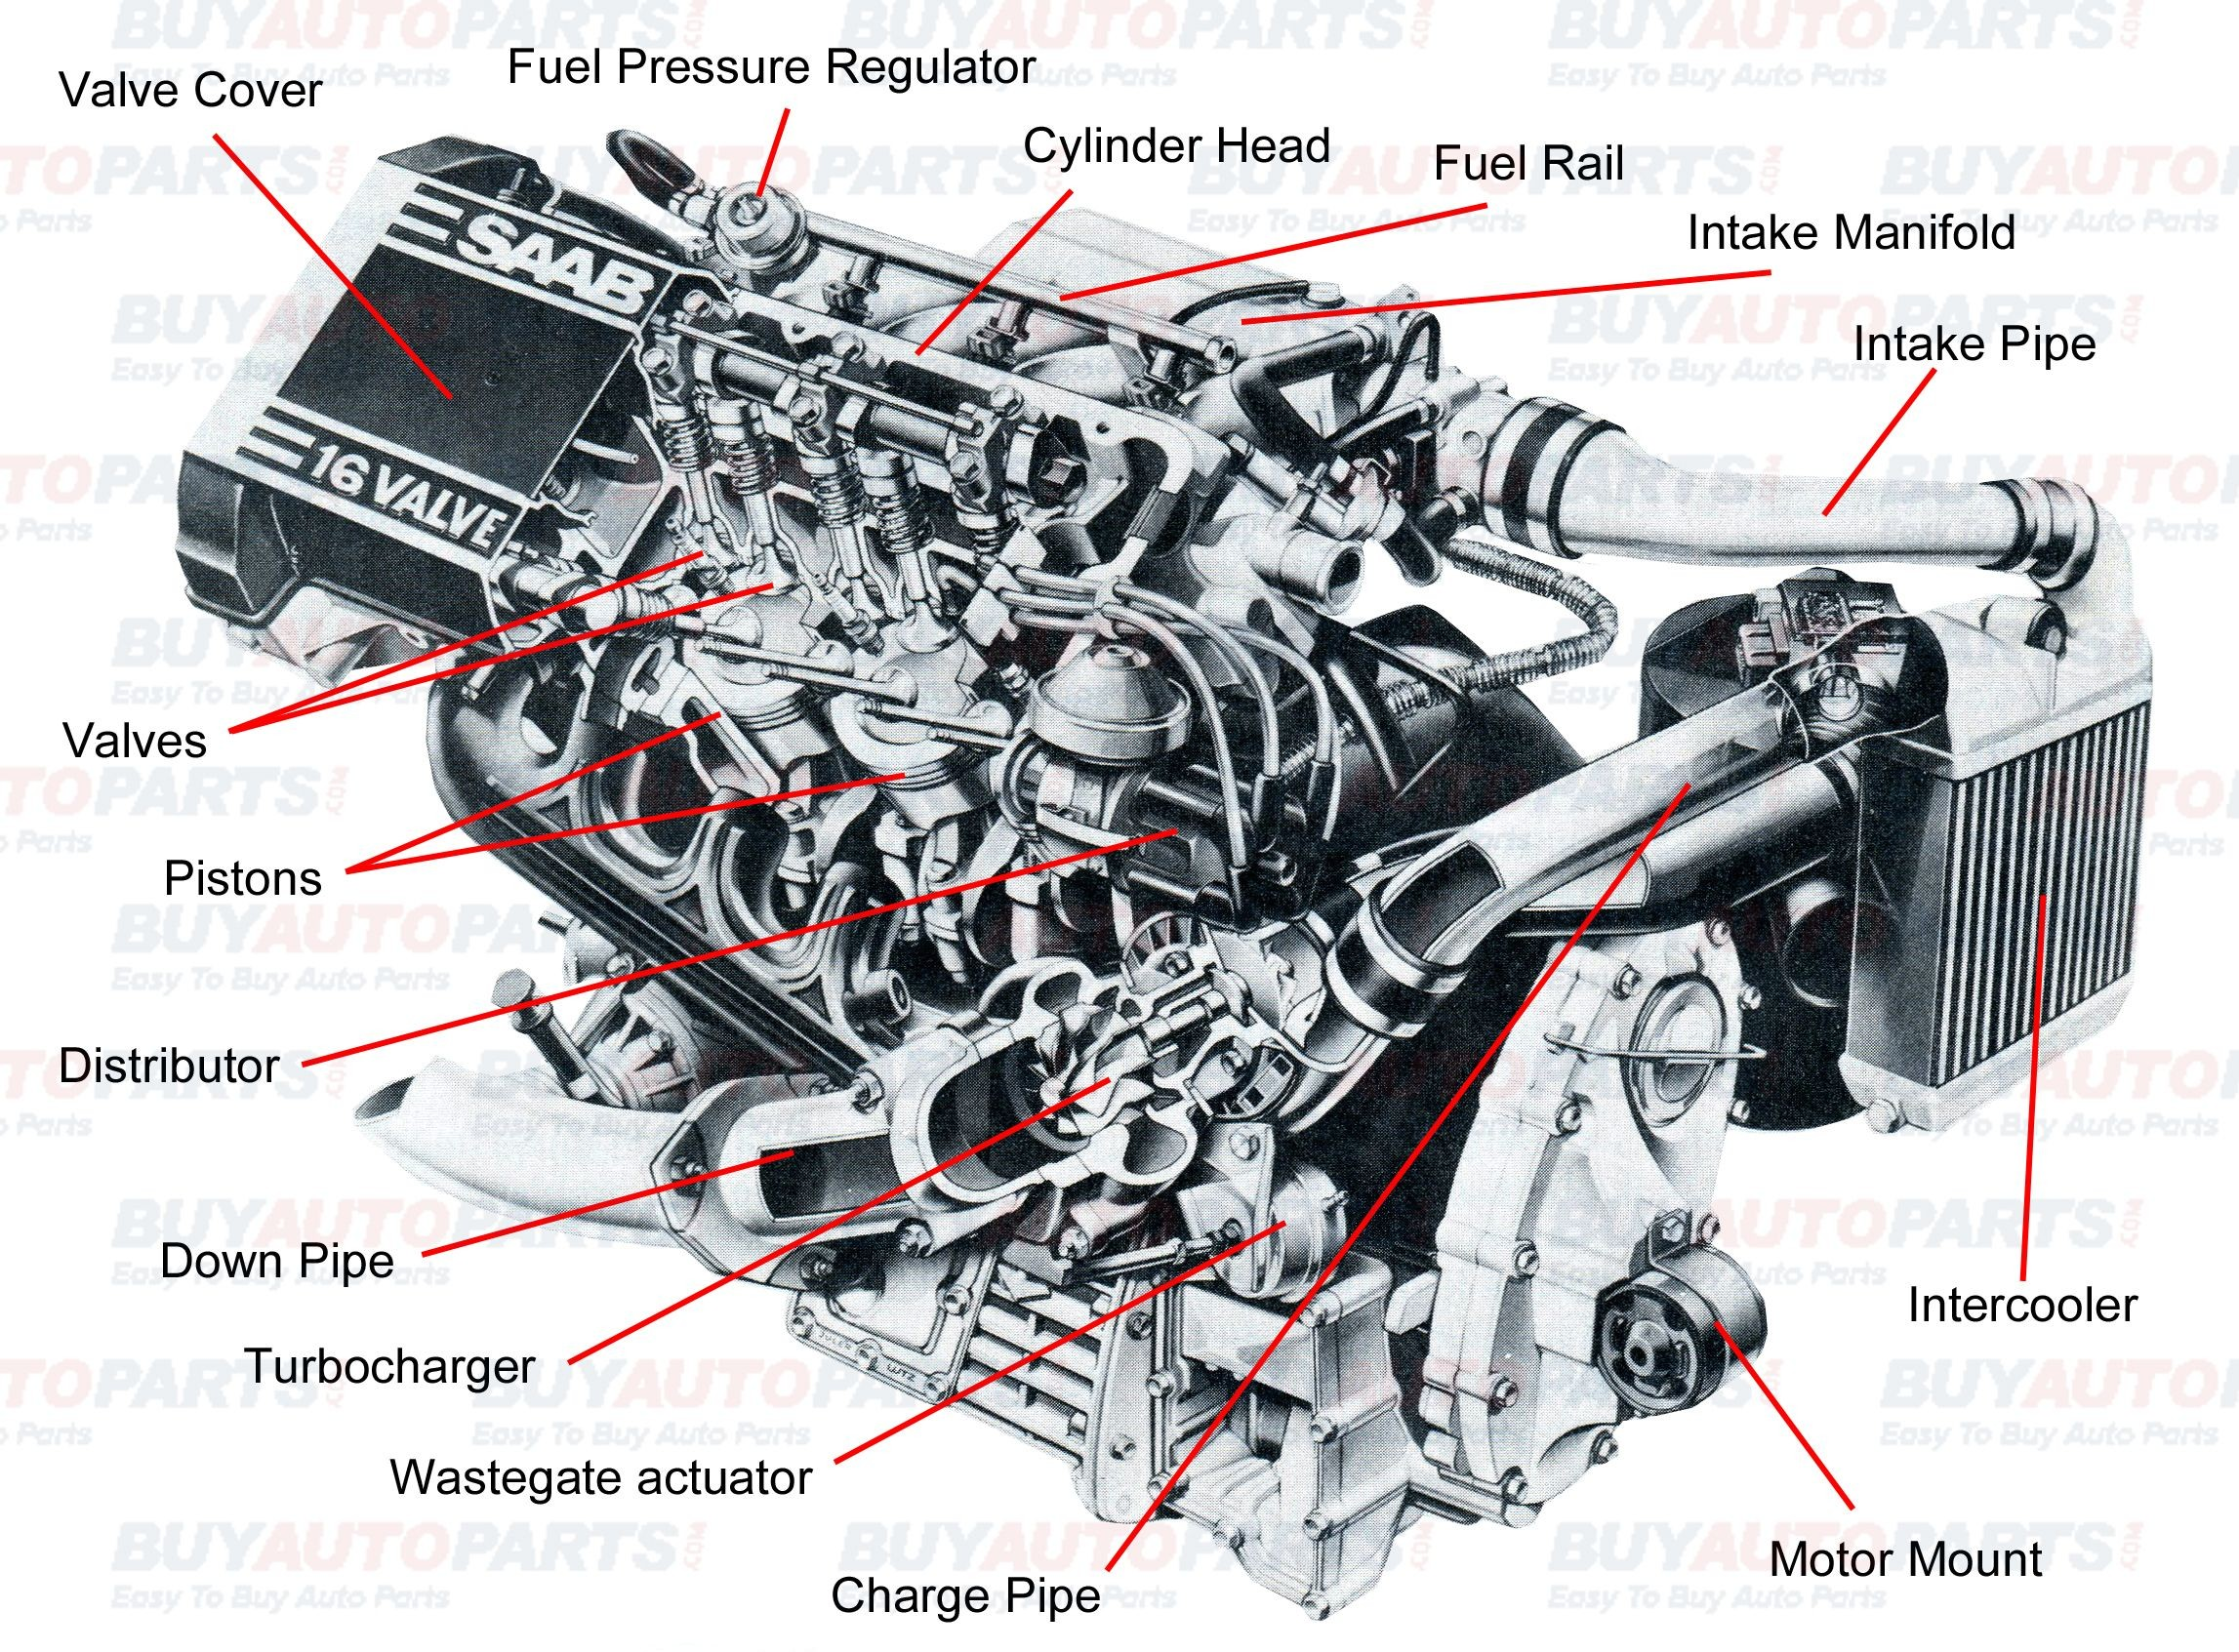 Small Engine Parts Diagram Pin by Jimmiejanet Testellamwfz On What Does An Engine with Turbo Of Small Engine Parts Diagram Looking for Snapper Model Wm B Rear Engine Riding Mower Repair